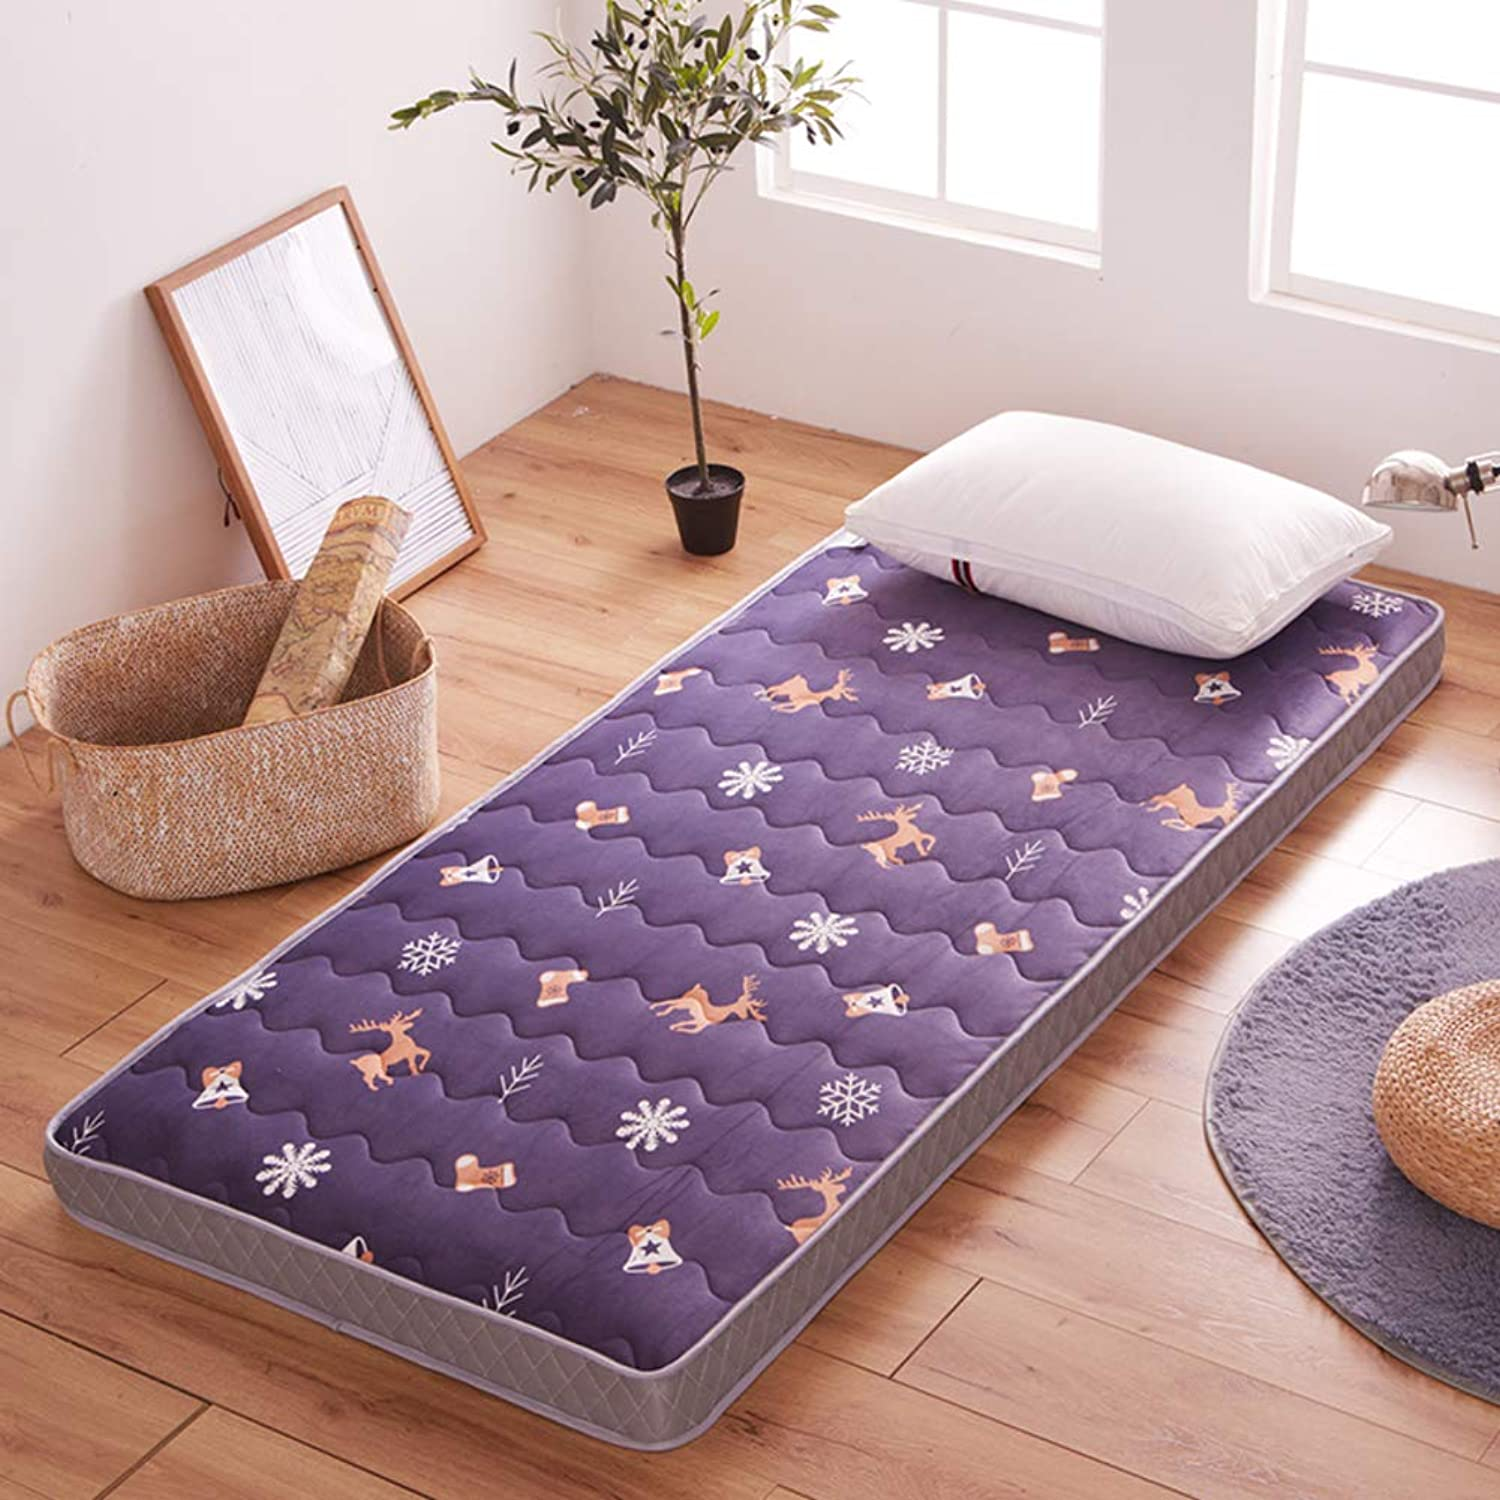 Thicken Bed mattress Sleeping pad Quilted fitted, Tatami mattress Non-slip Japanese floor futon mattress Foldable Roll up Mattress pad Easy to carry Student dormitory Breathable-G 120x200cm(47x79inch)